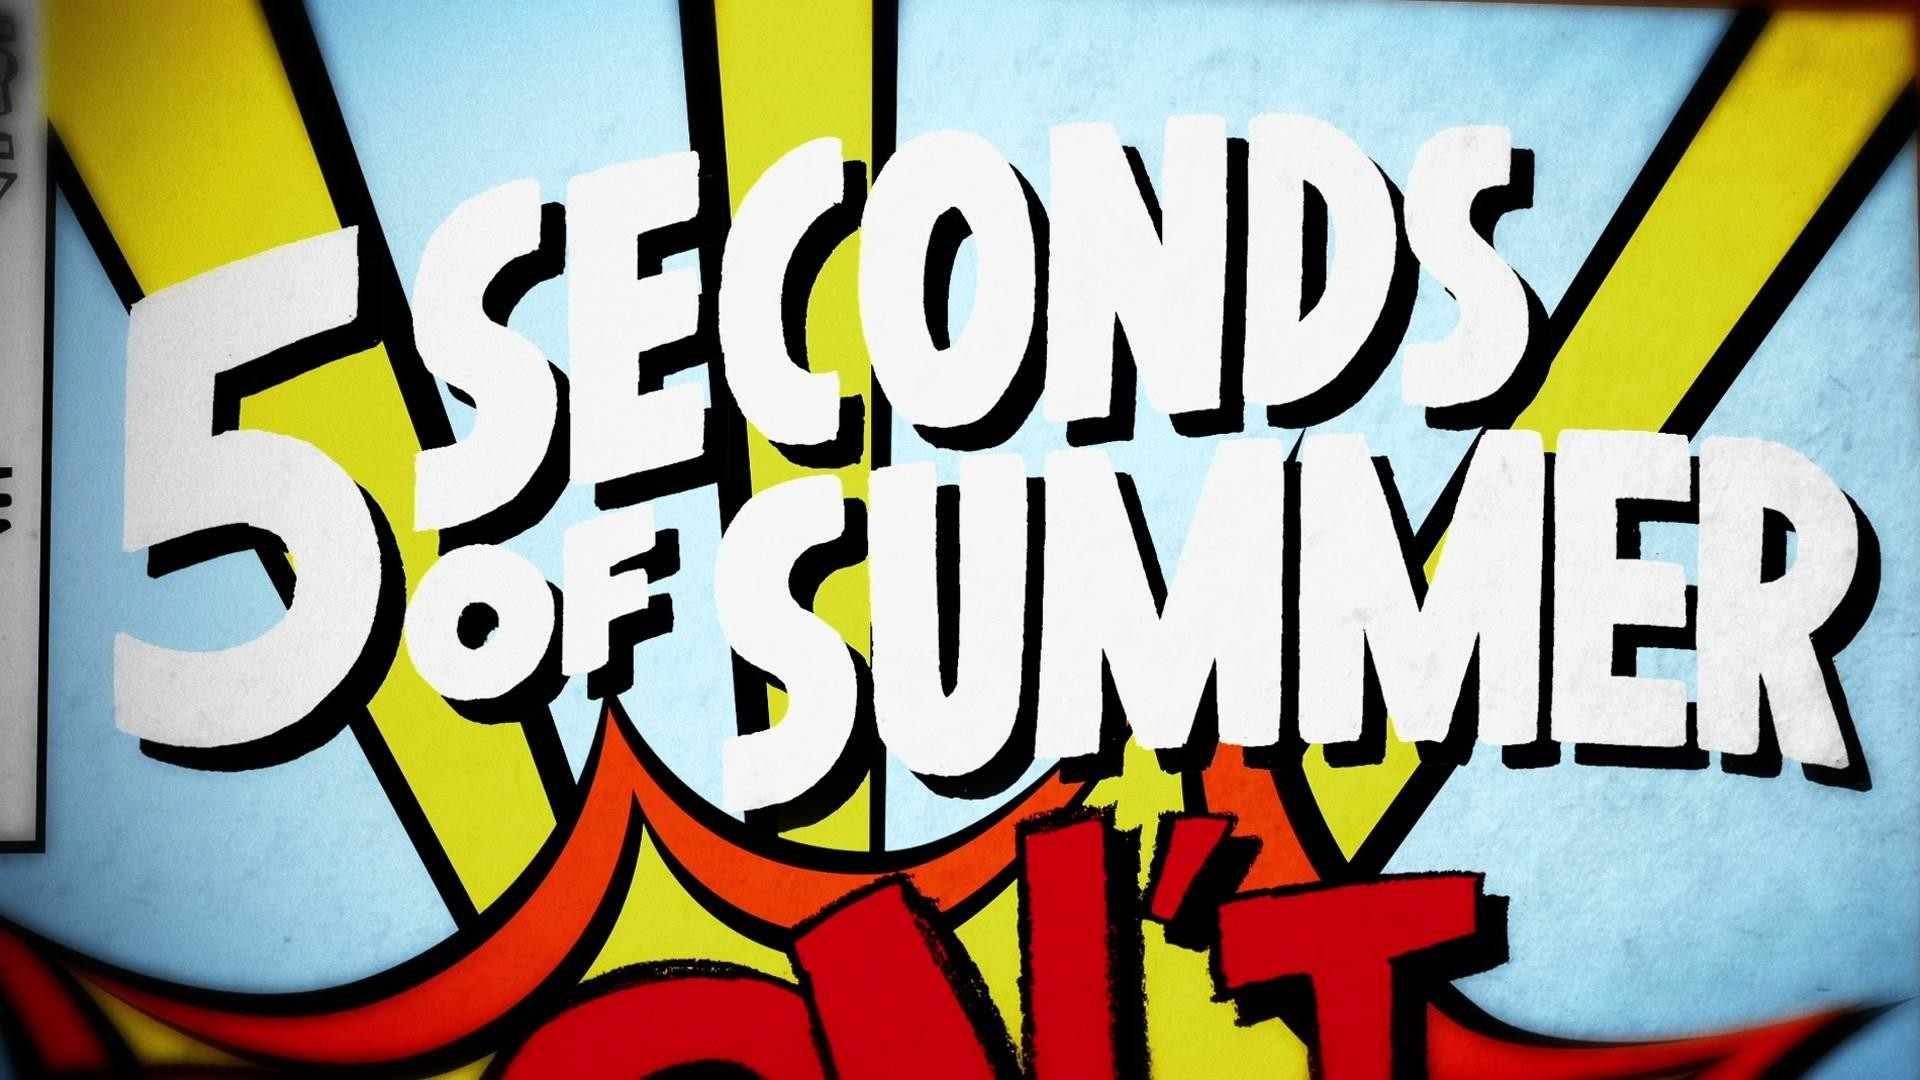 5 Seconds Of Summer – Don't Stop (Lyric Video)